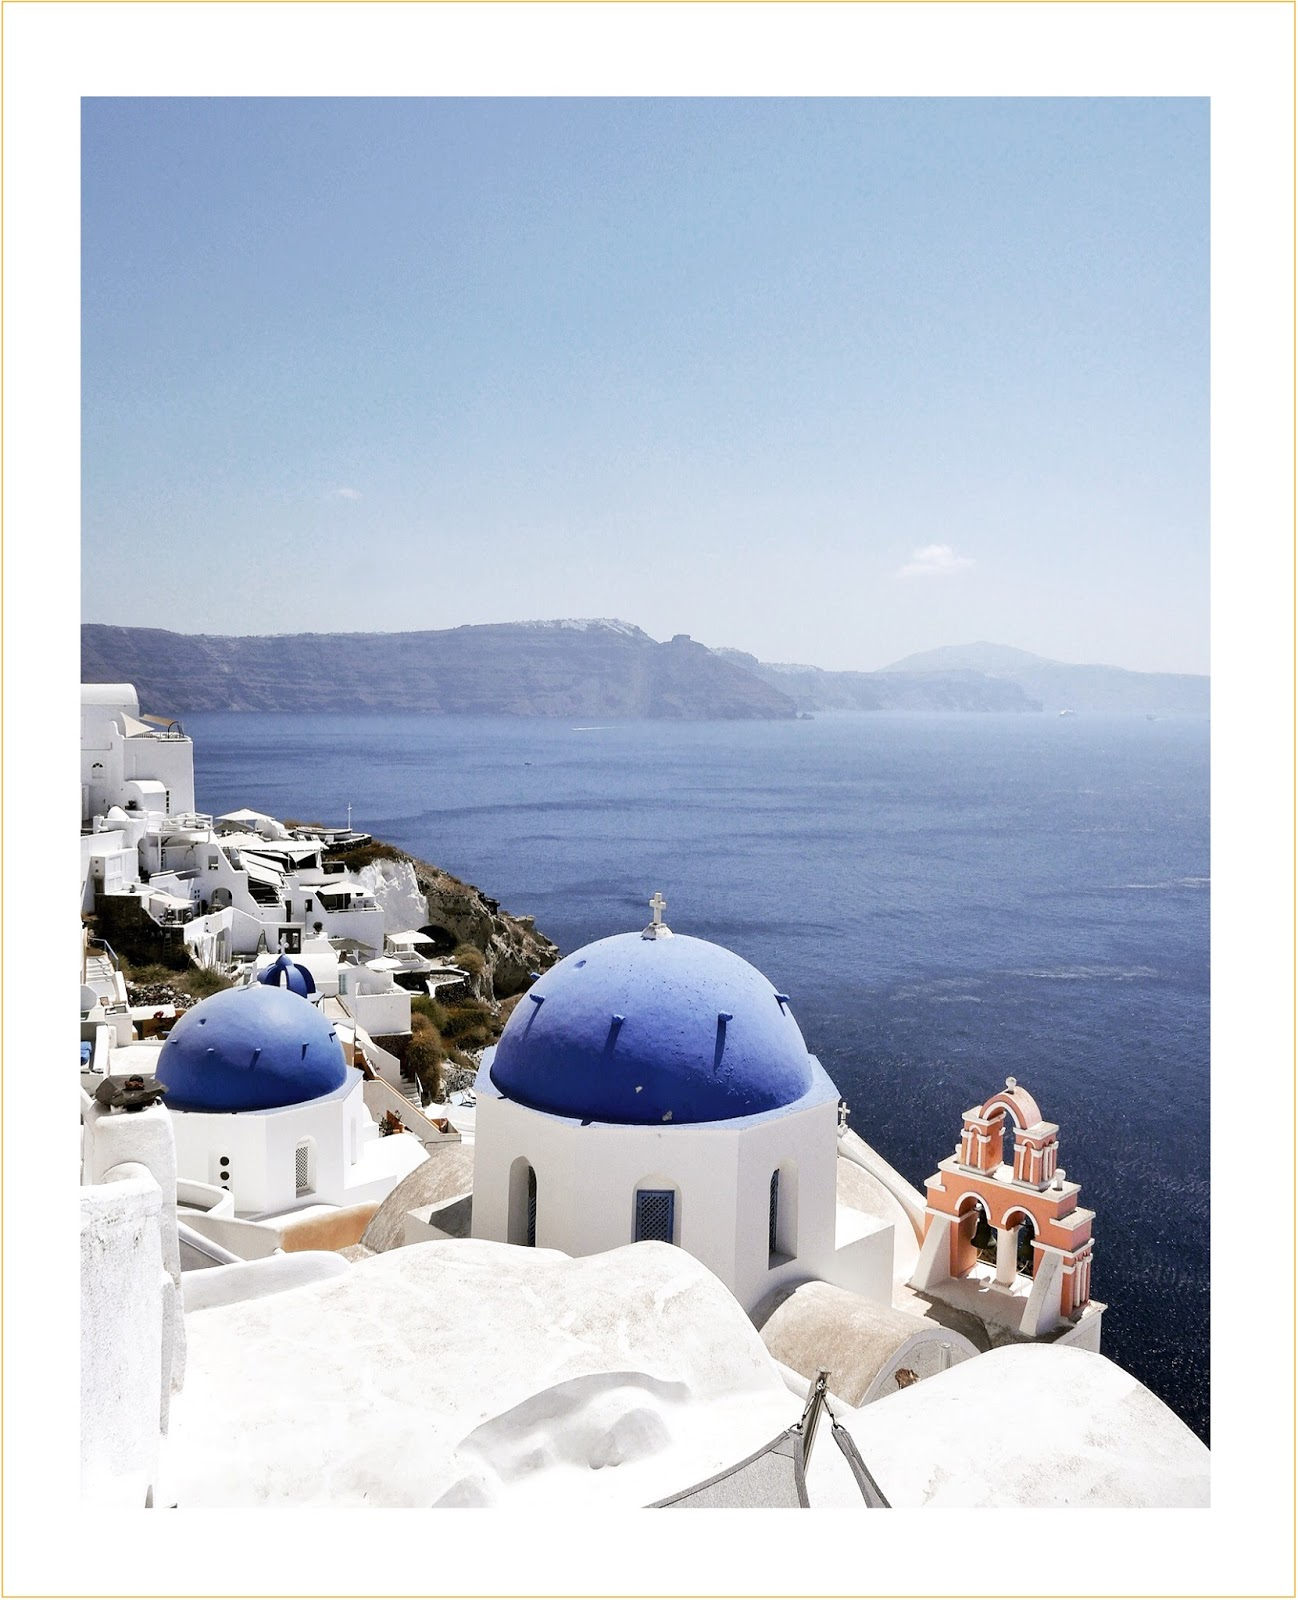 Euriental | luxury travel & style | Santorini Greece